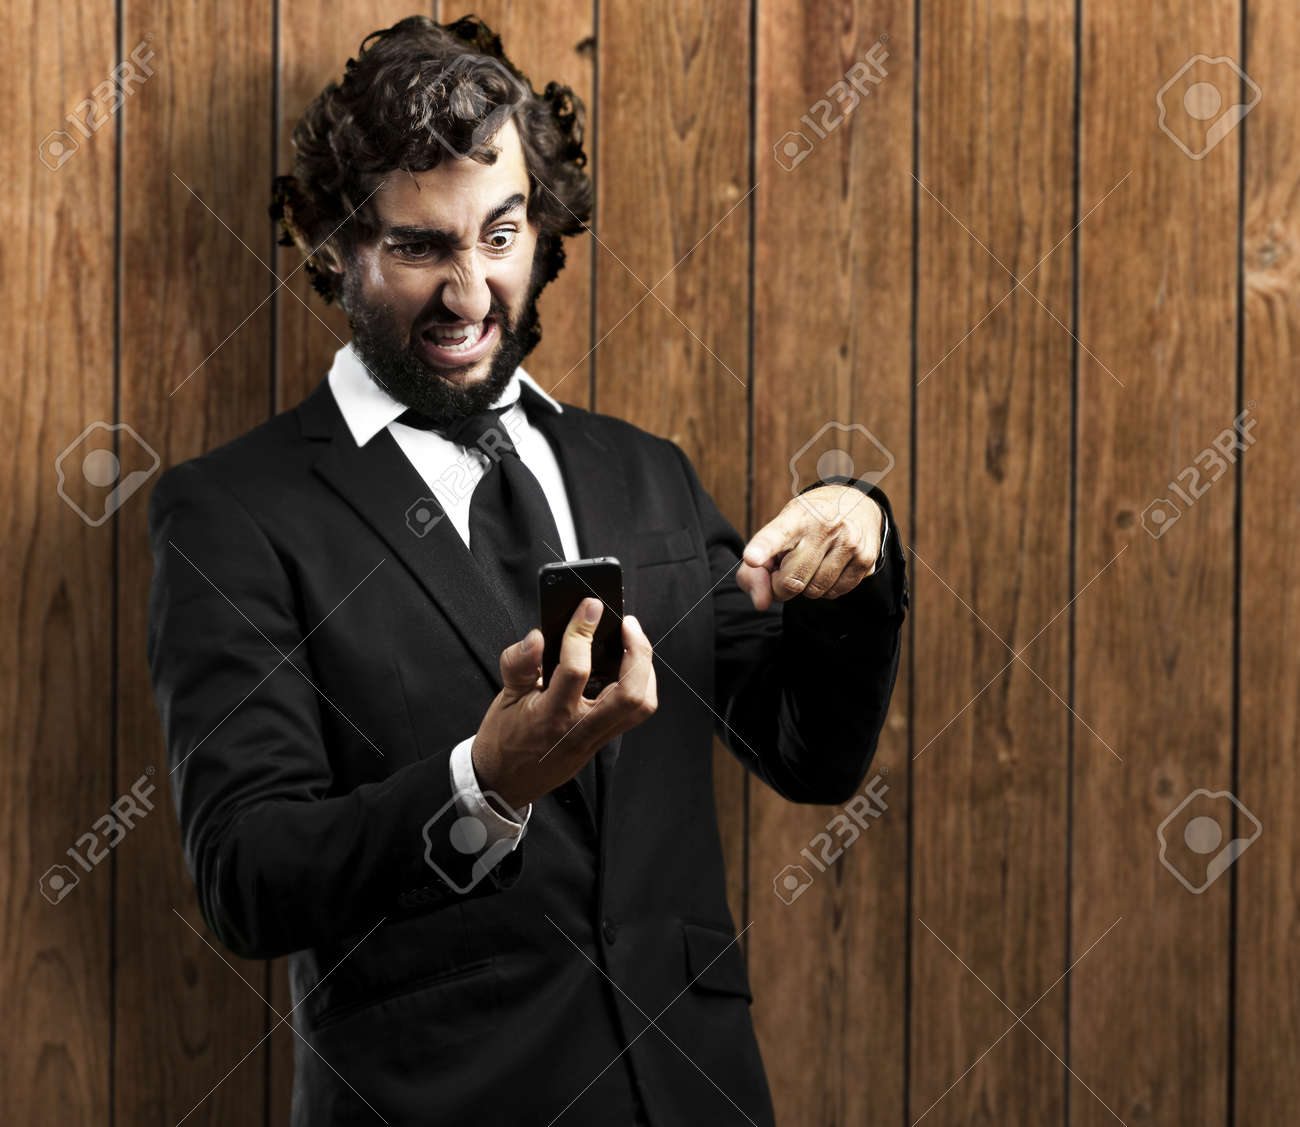 portrait of business man angry with technology against a wooden wall Stock Photo - 12105208